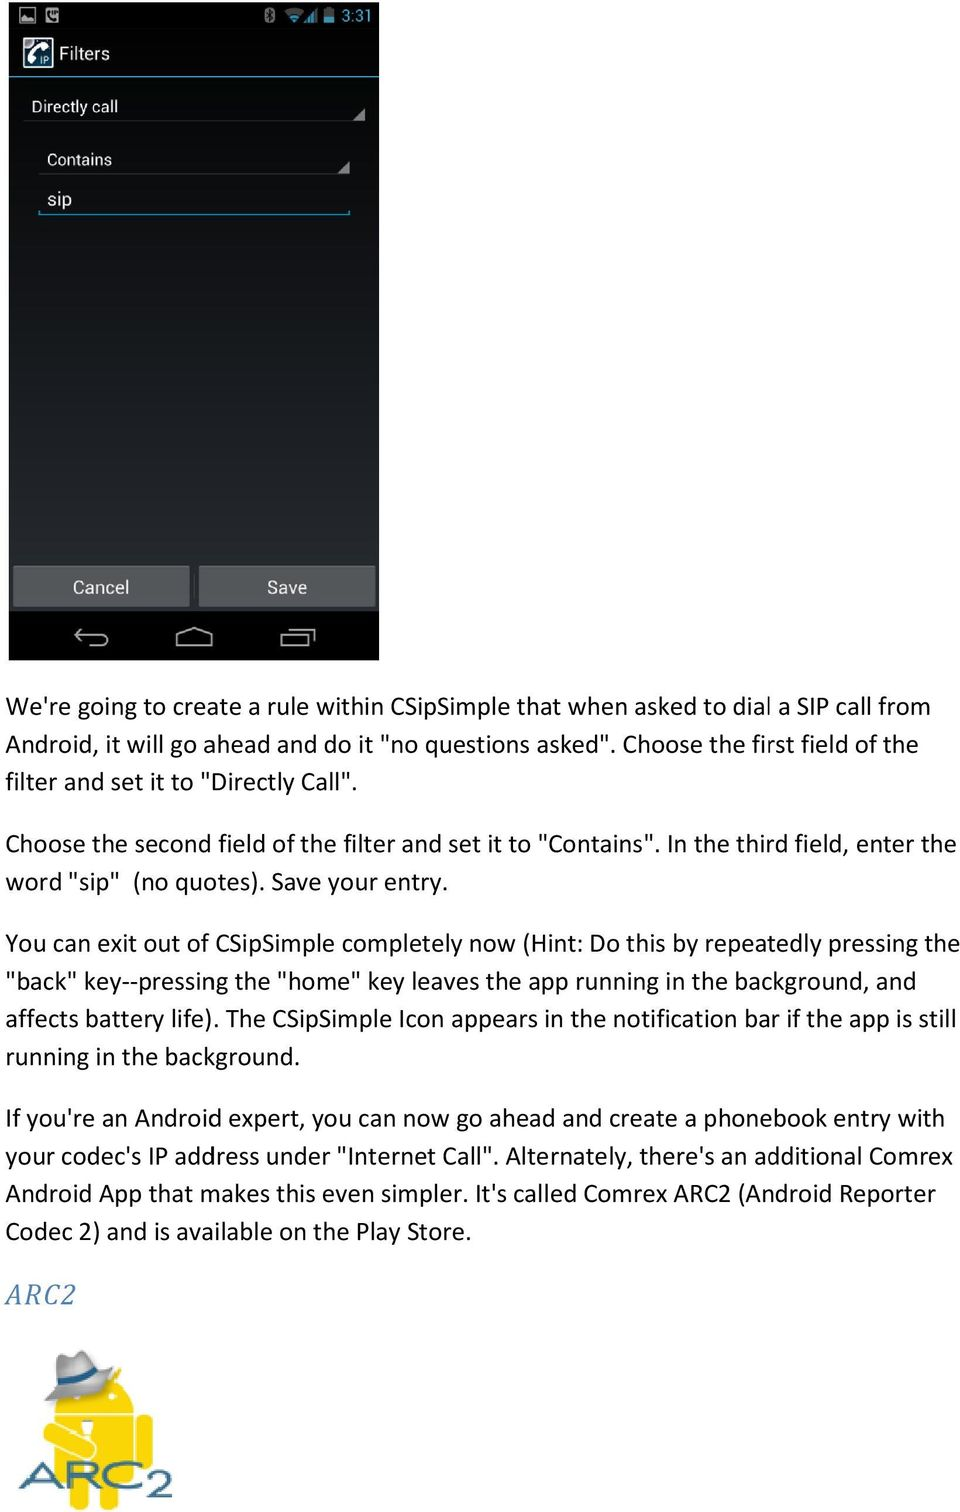 Integrating the Android CSipSimple app for use with Comrex